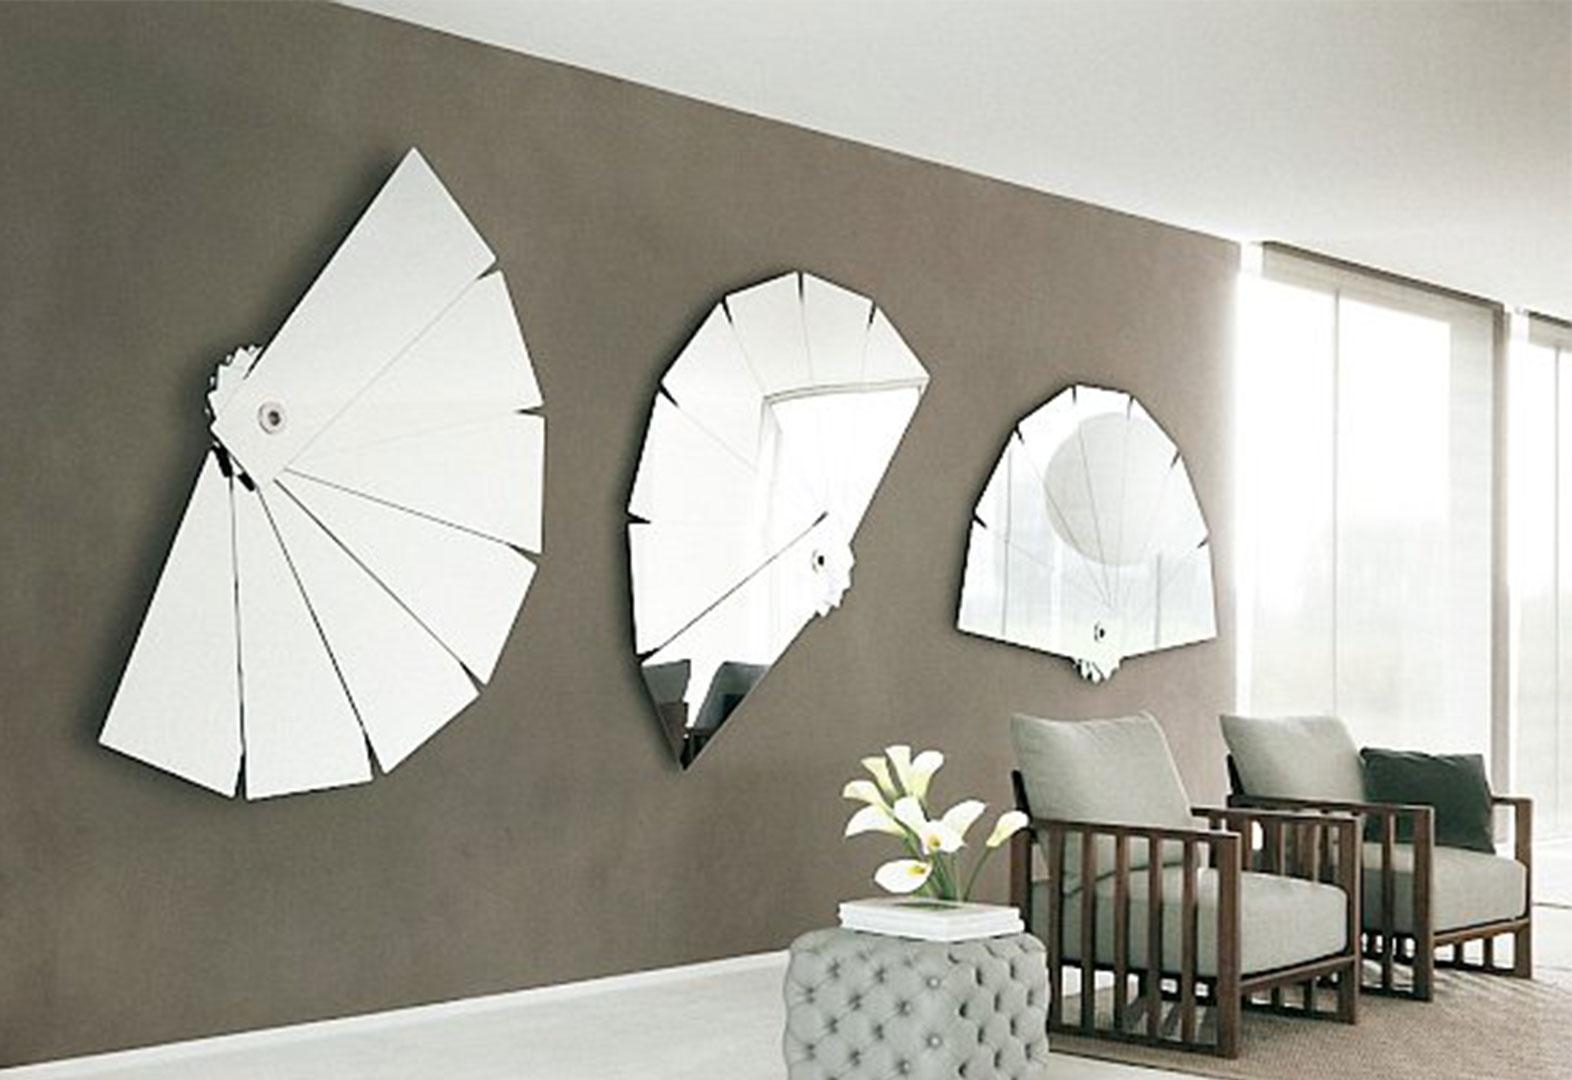 Large Modern Wall Mirrors Best Decorative Wall Mirrors Ideas In Unique Wall Mirrors Cheap (Image 8 of 15)